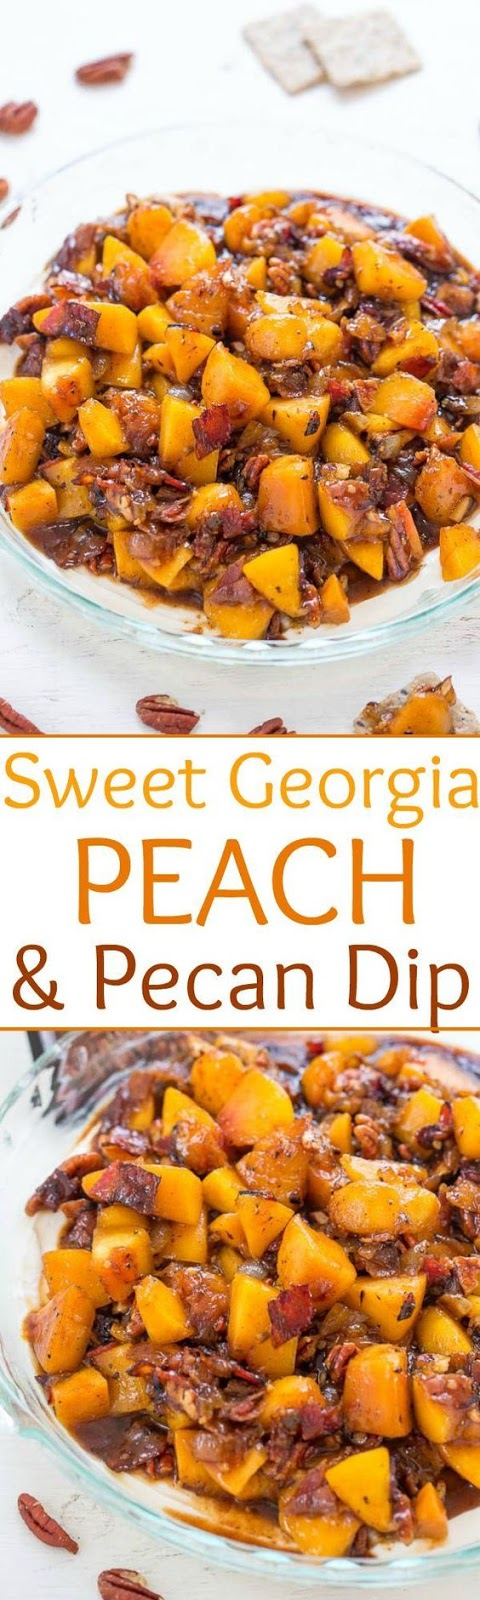 Sweet Georgia Peach and Pecan Dip